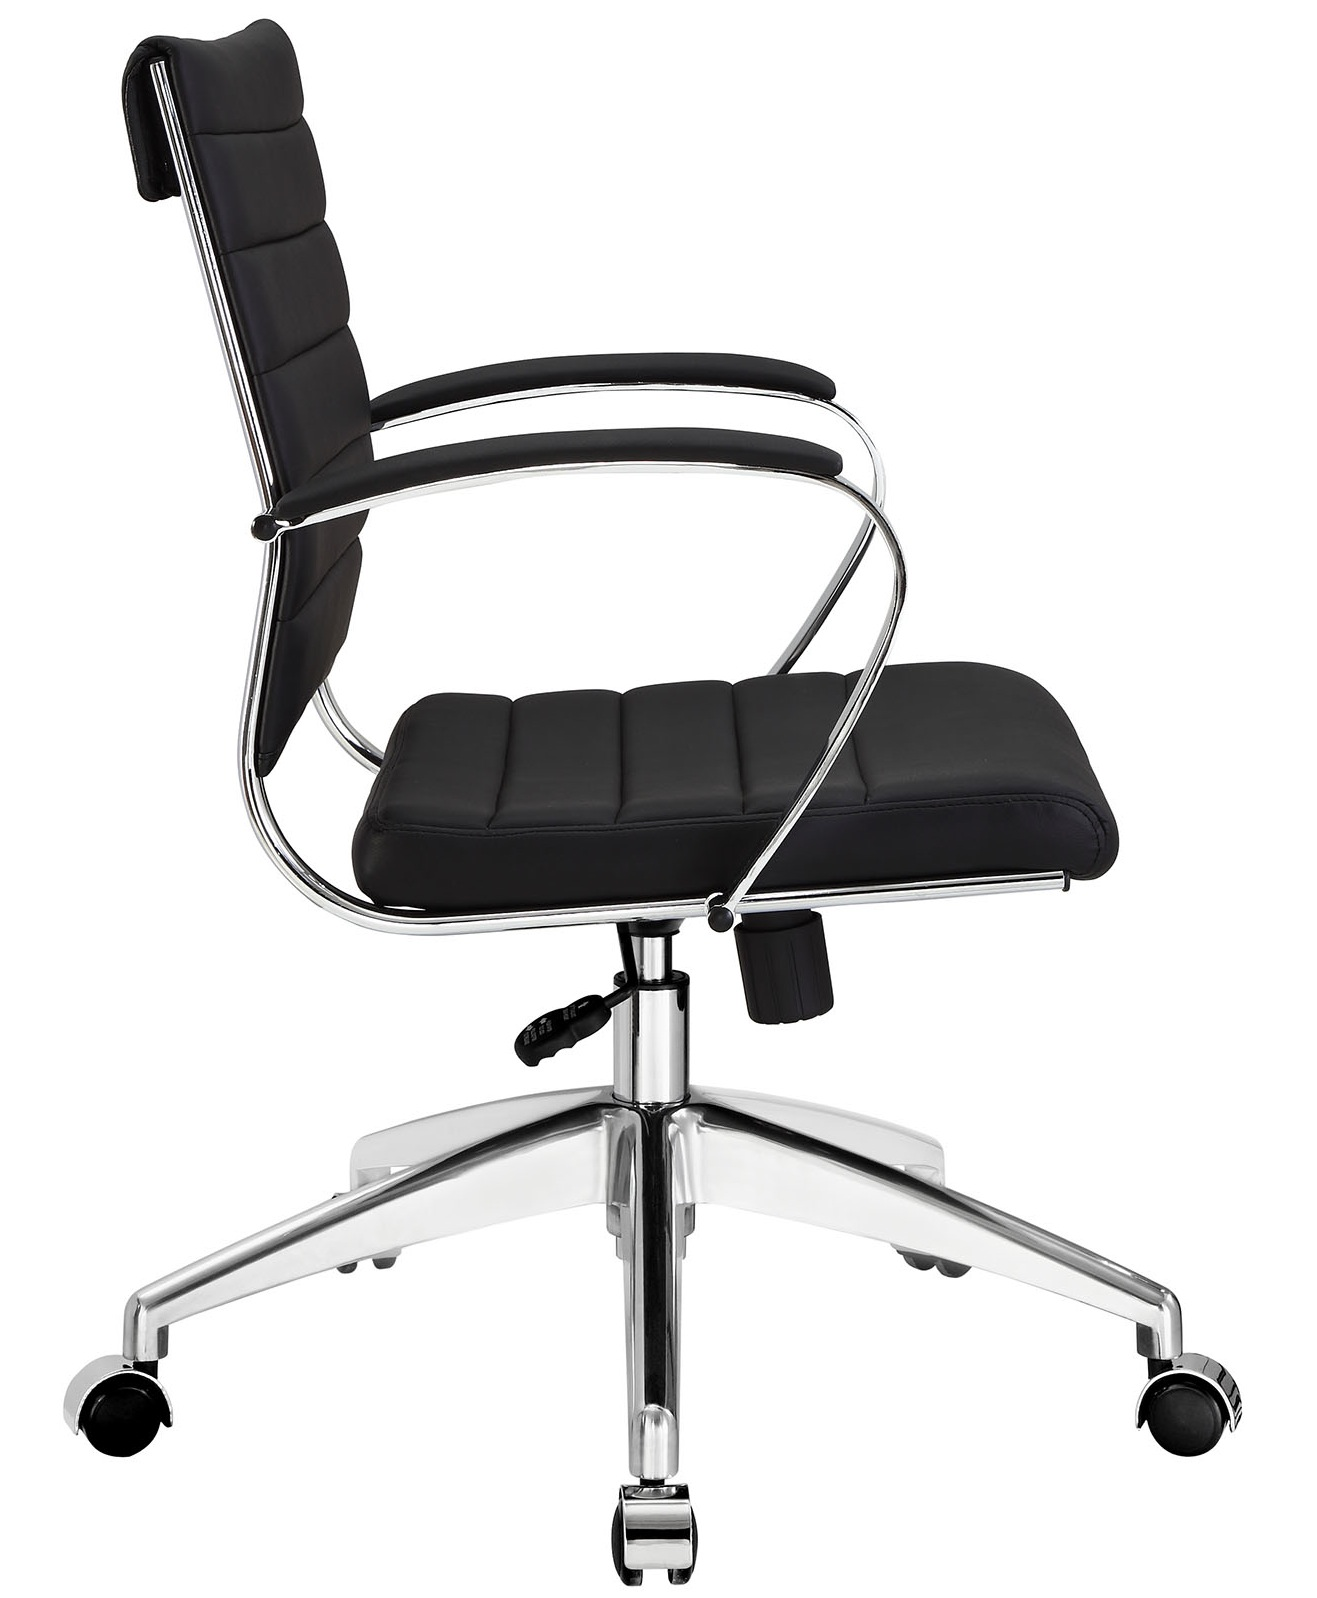 aria-chair-black.jpg